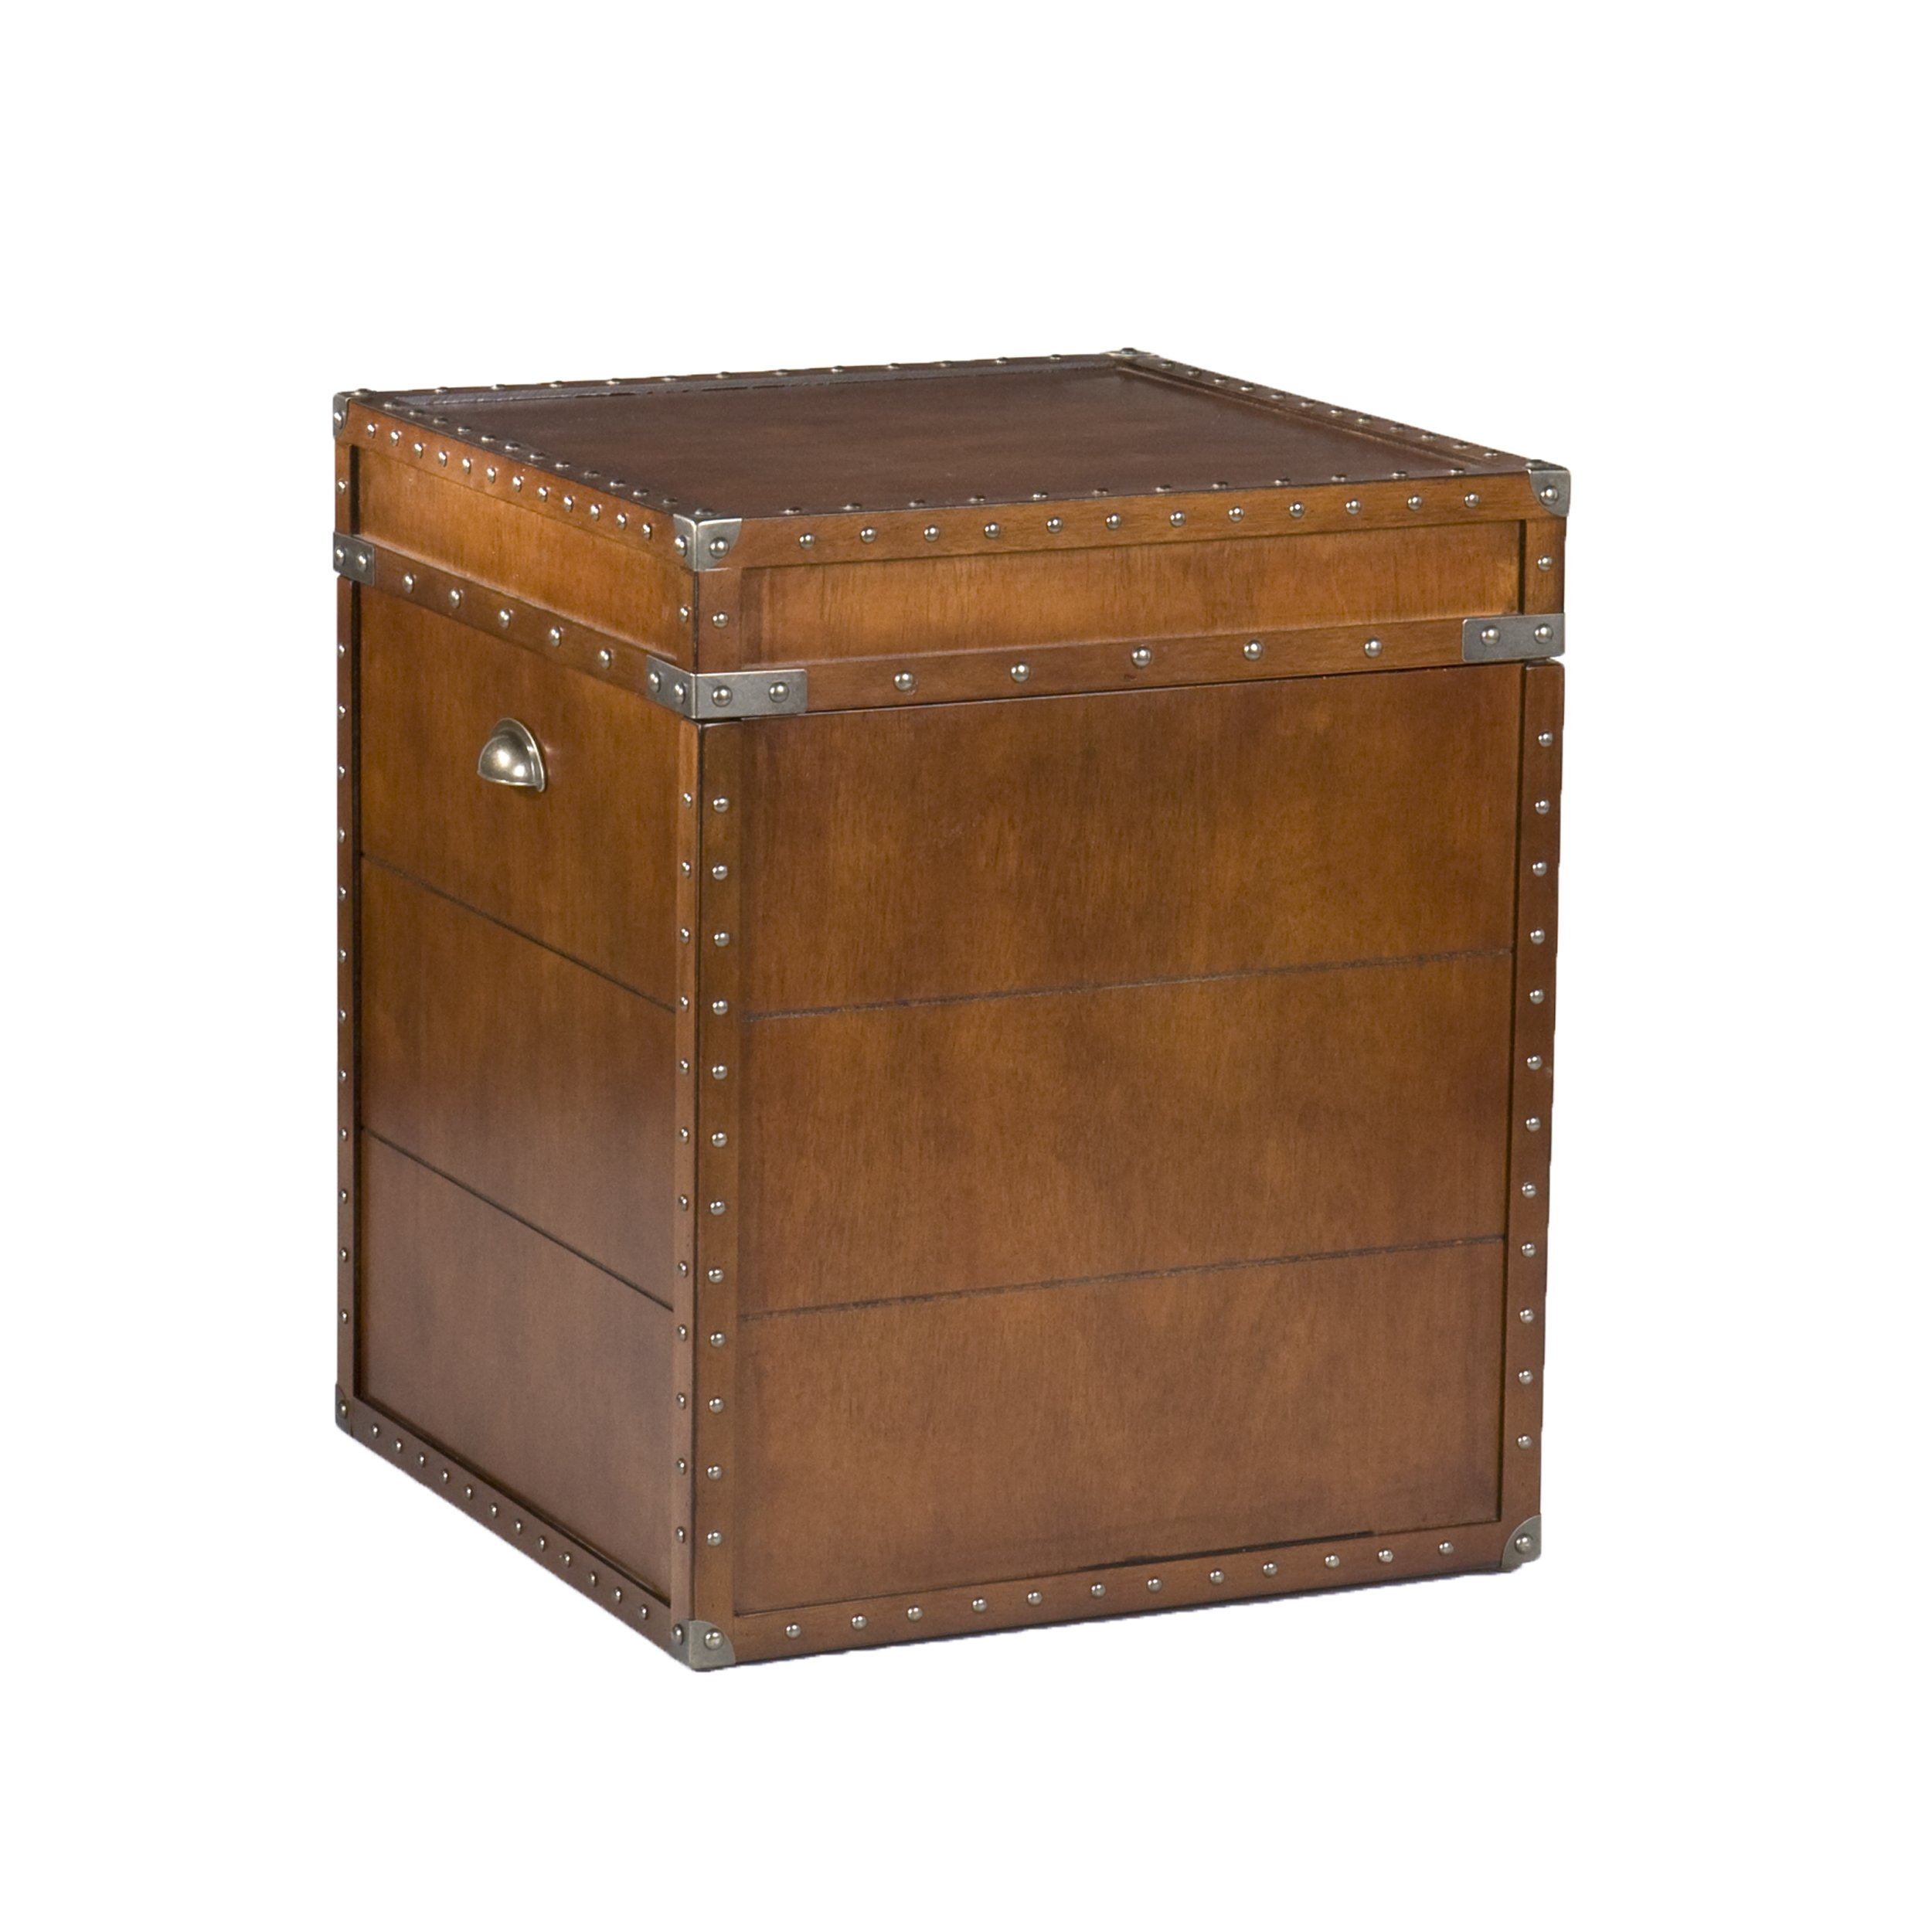 Southern Enterprises Steamer Trunk End Table - Rustic Nailhead Trim - Refinded Industrial Style by Southern Enterprises (Image #7)